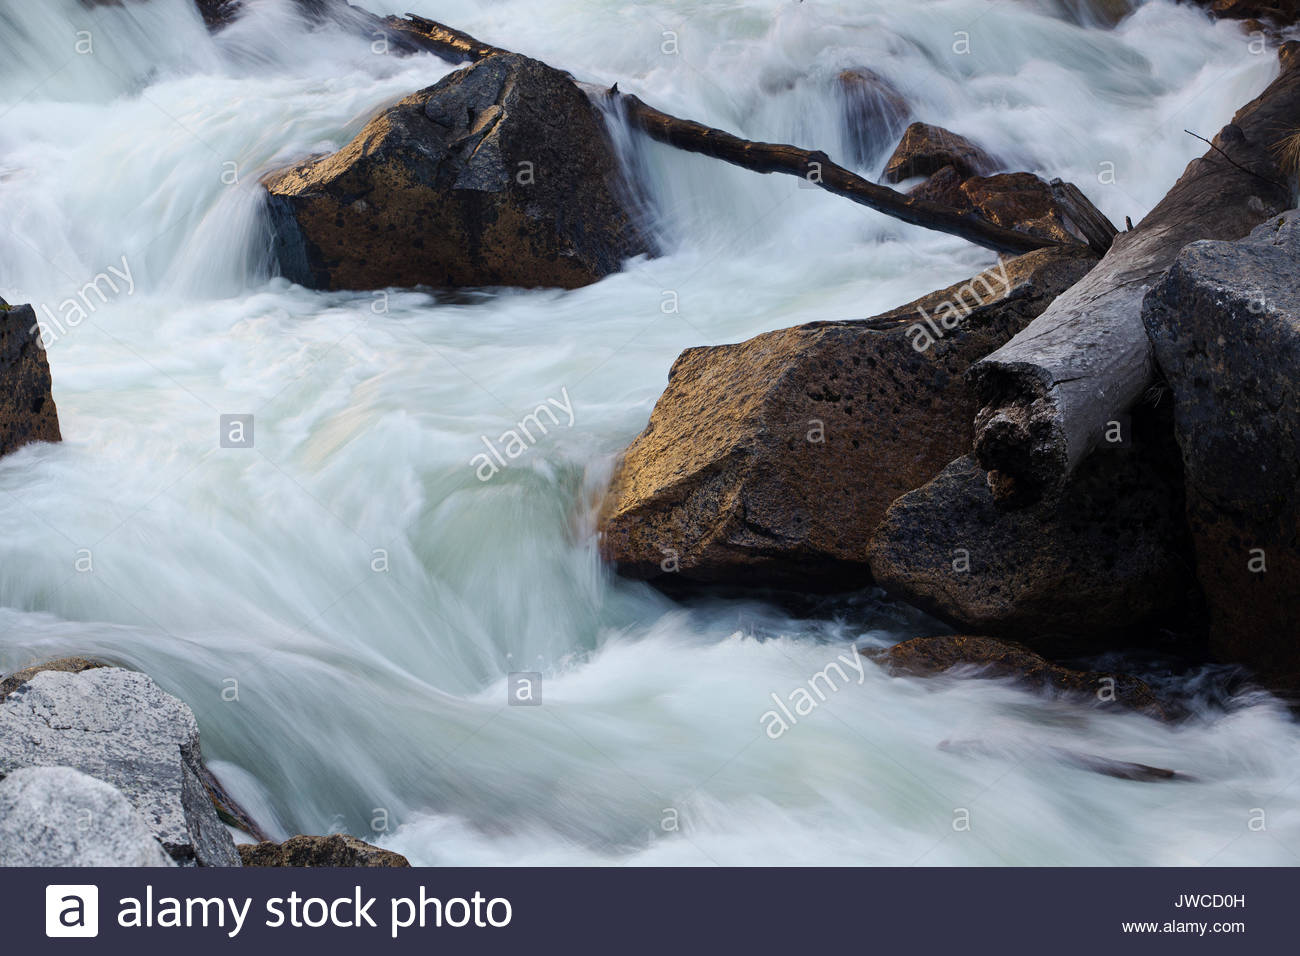 Close up of swiftly flowing currents in Tenaya Creek. - Stock Image